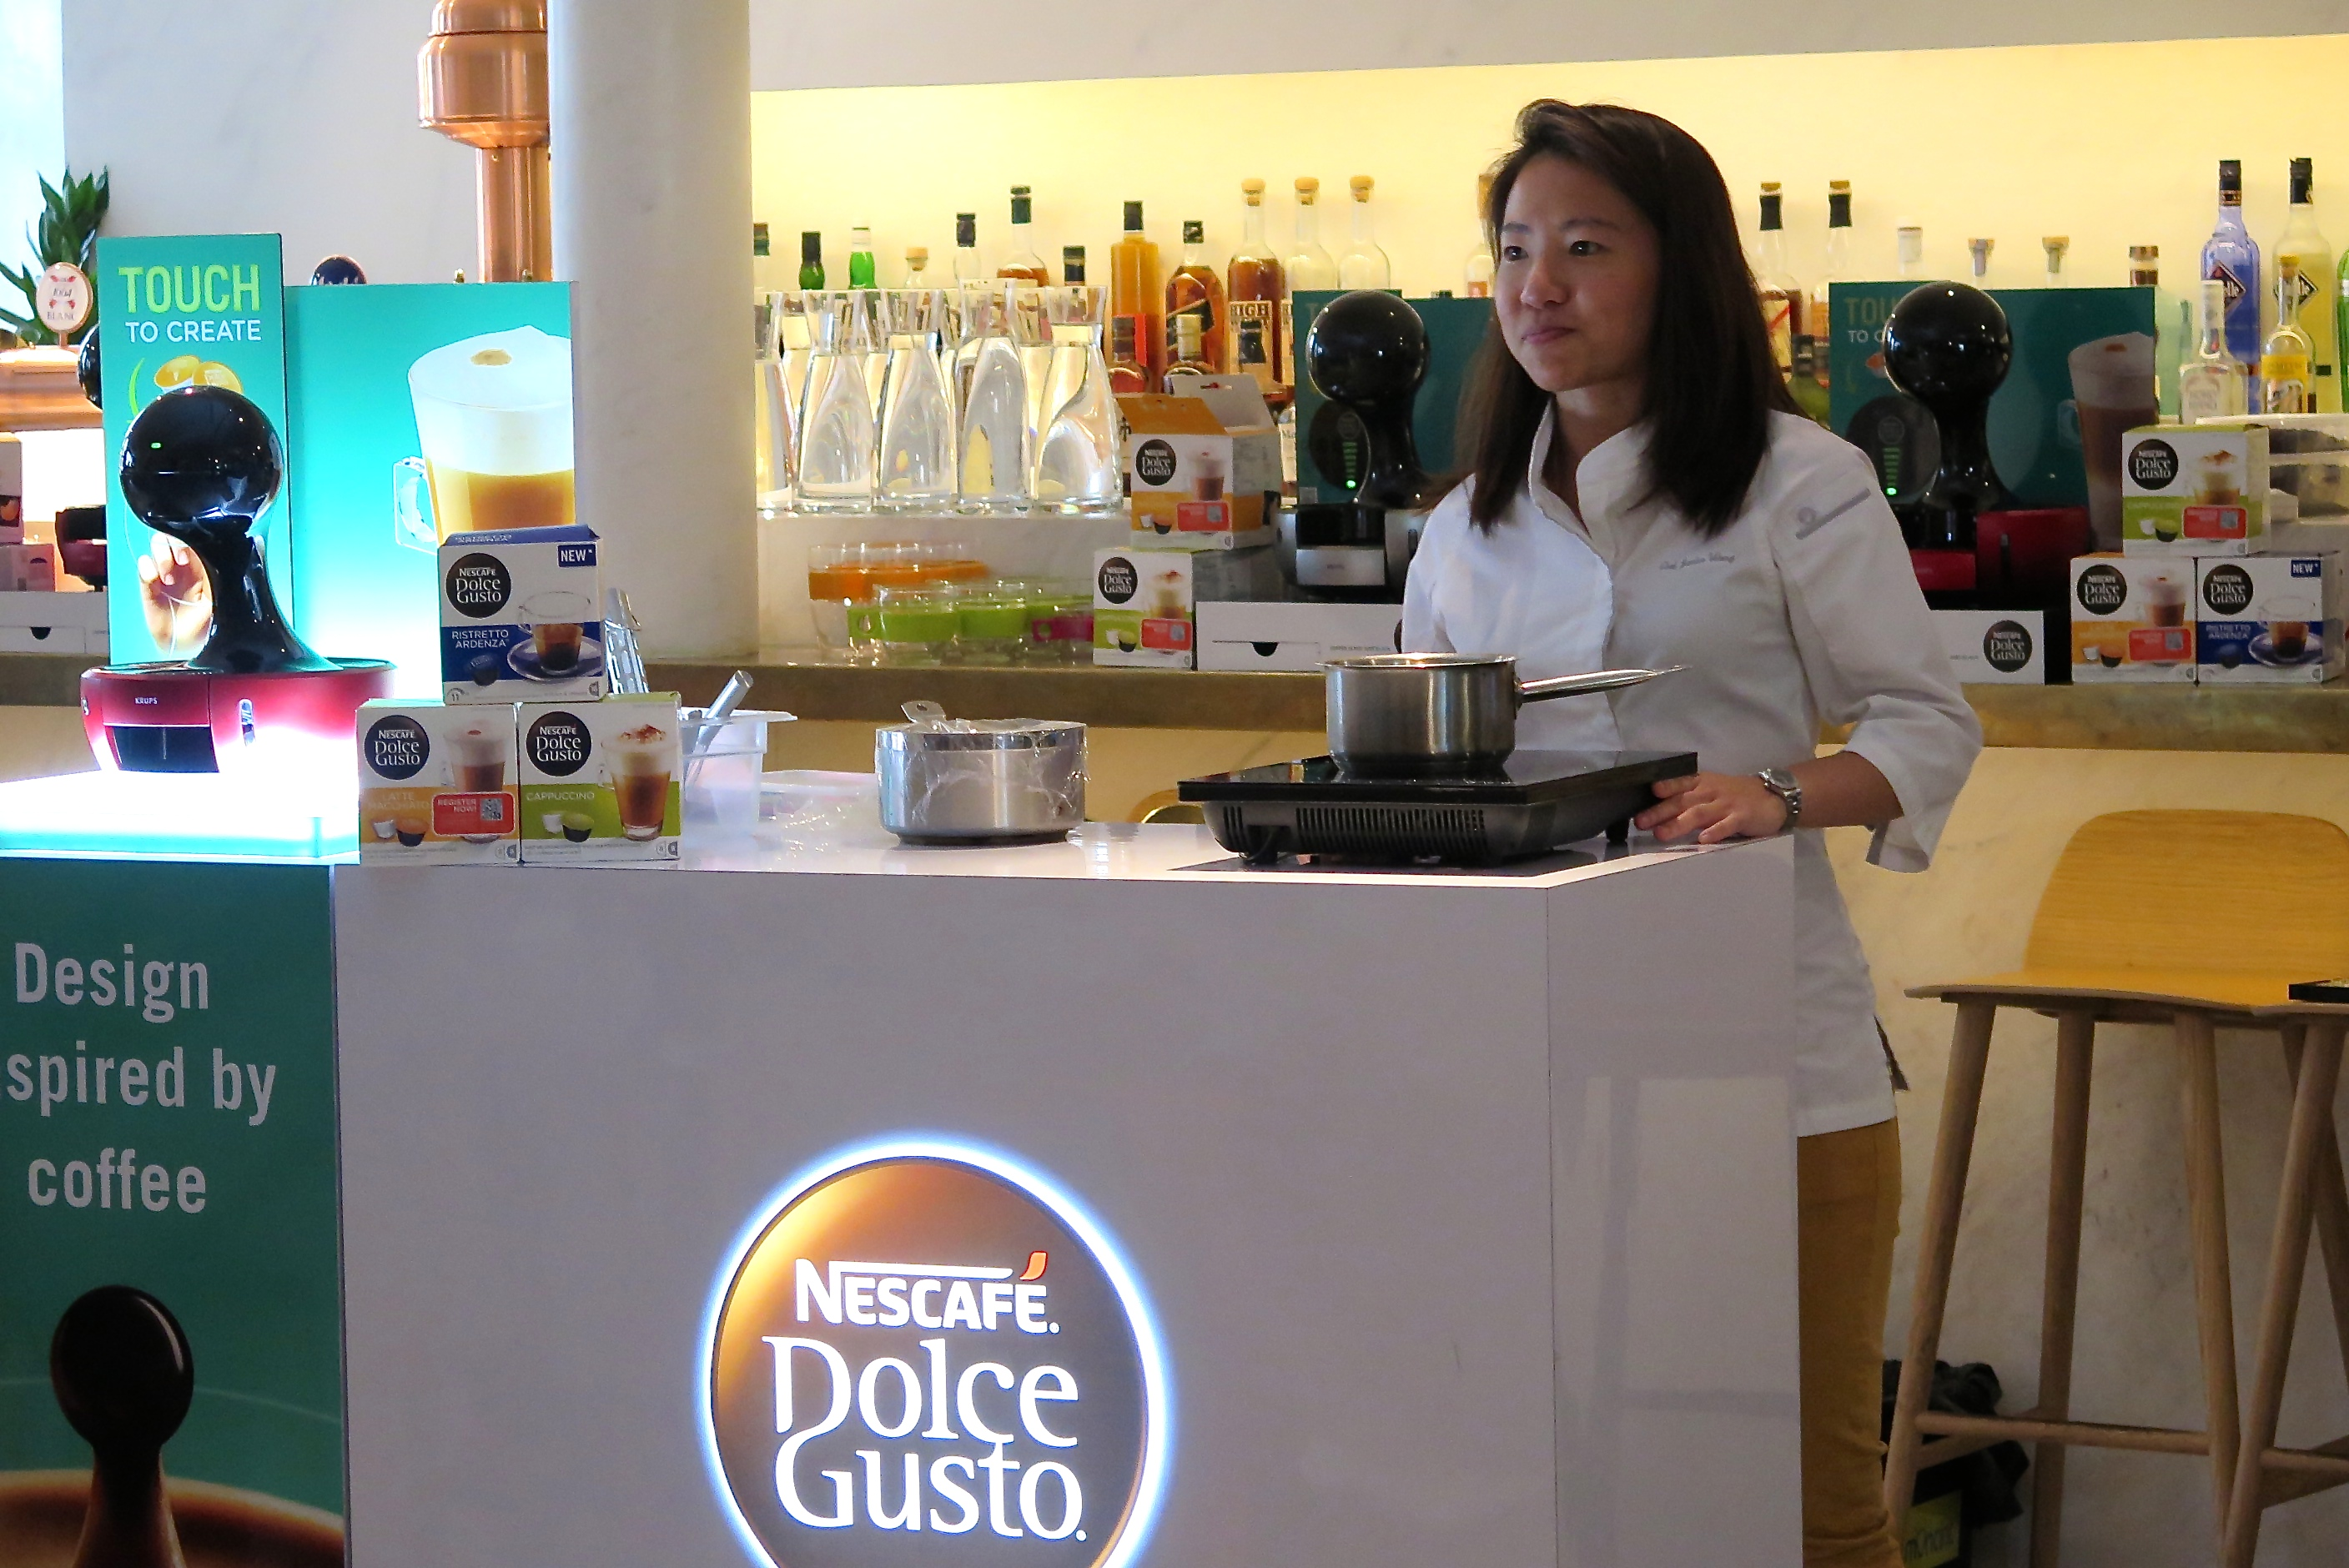 discovering the new drop by nescafe dolce gusto x janice wong dessert pairing alainlicious. Black Bedroom Furniture Sets. Home Design Ideas